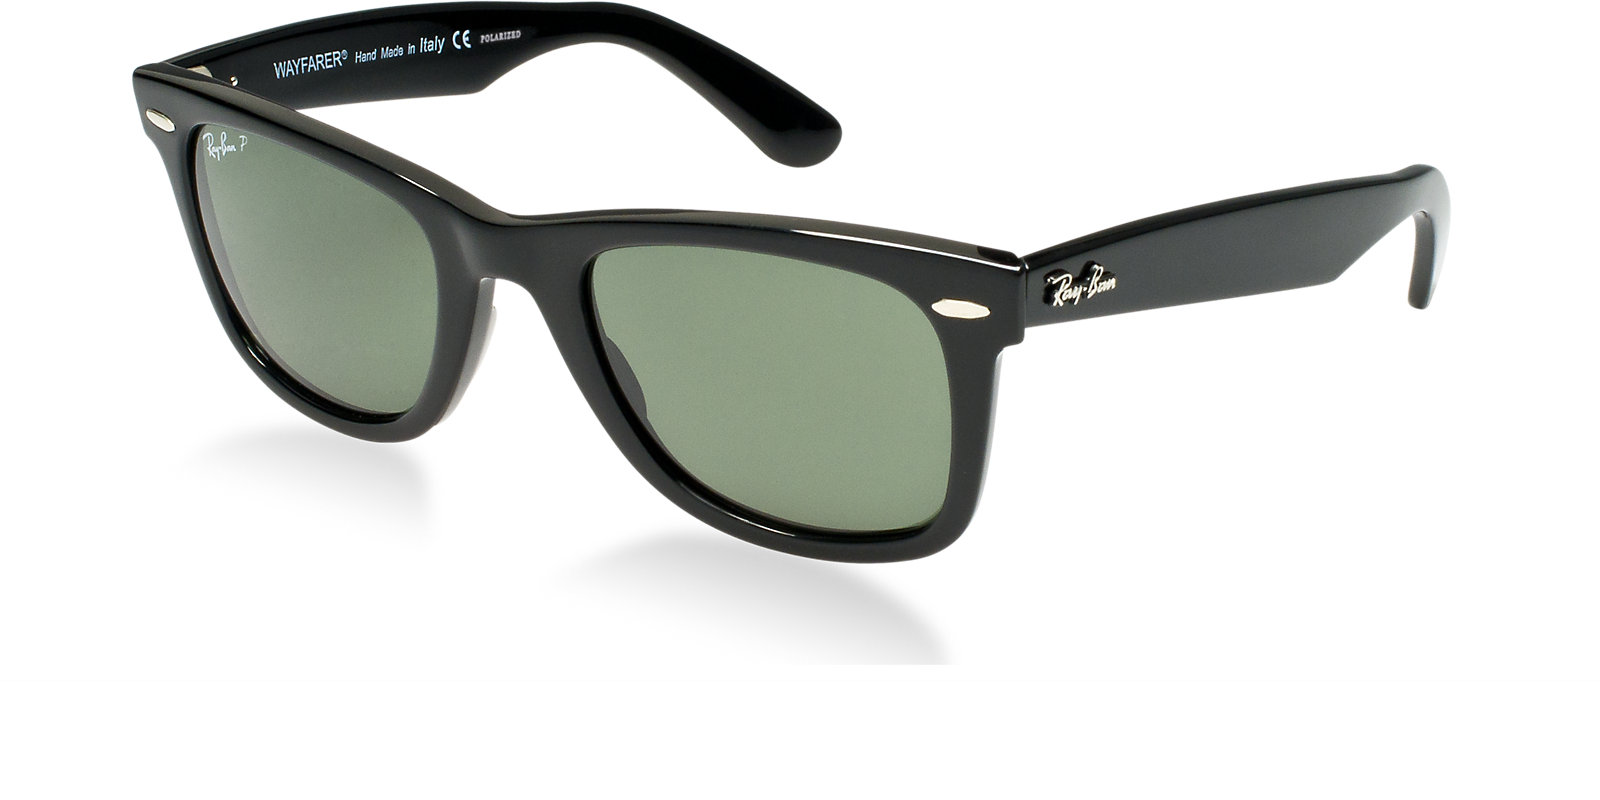 e7dc1d6545 Previous  Next. Previous  Next. RAY-BAN RB2140 901 58 BLACK POLARIZED  CLASSIC WAYFARER SUNGLASSES